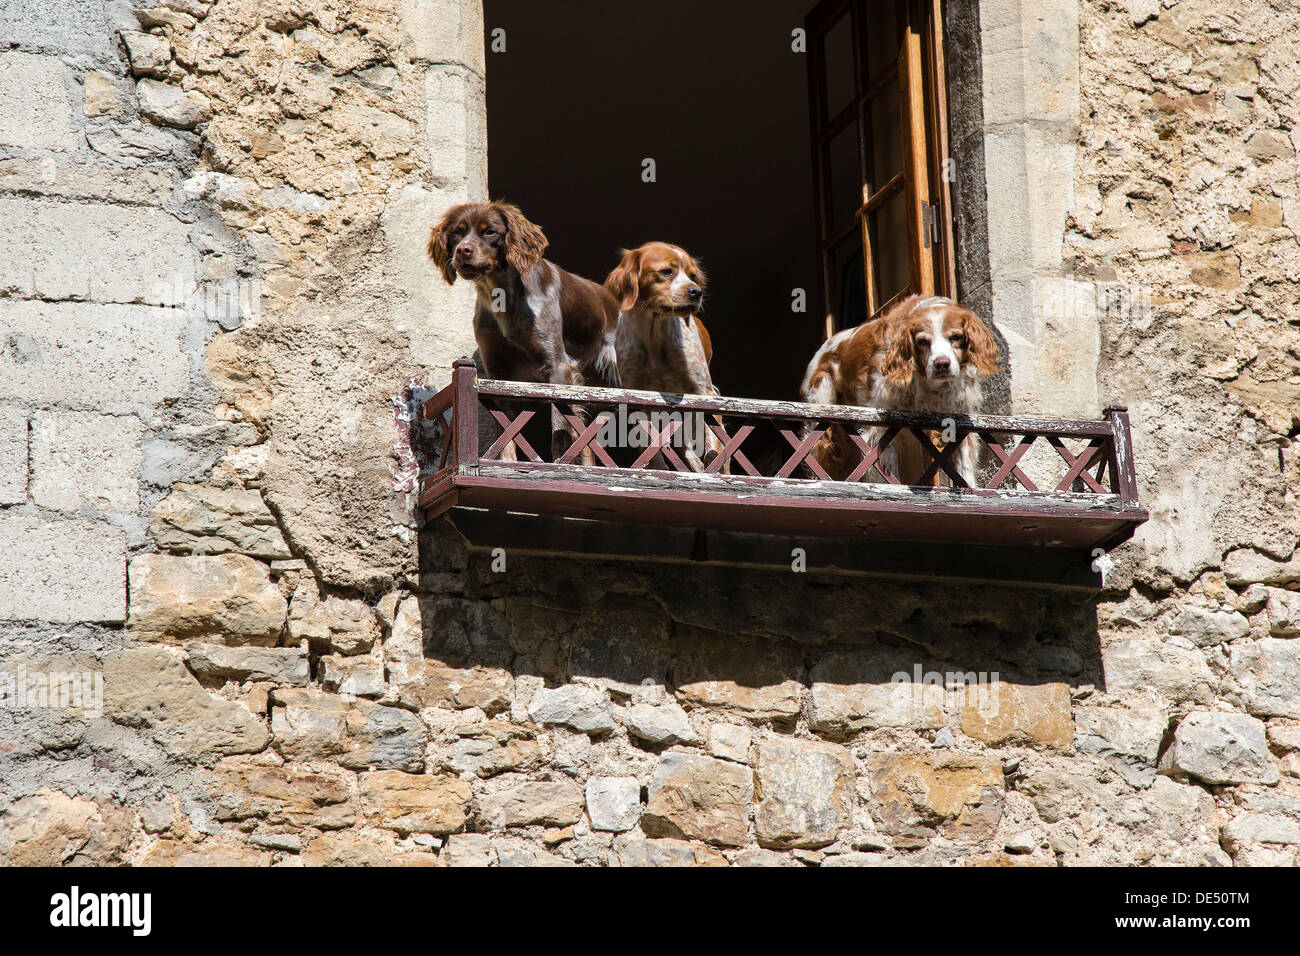 Three spaniel dogs peering over a balcony in Baume les Messieurs, Jura region of France - Stock Image